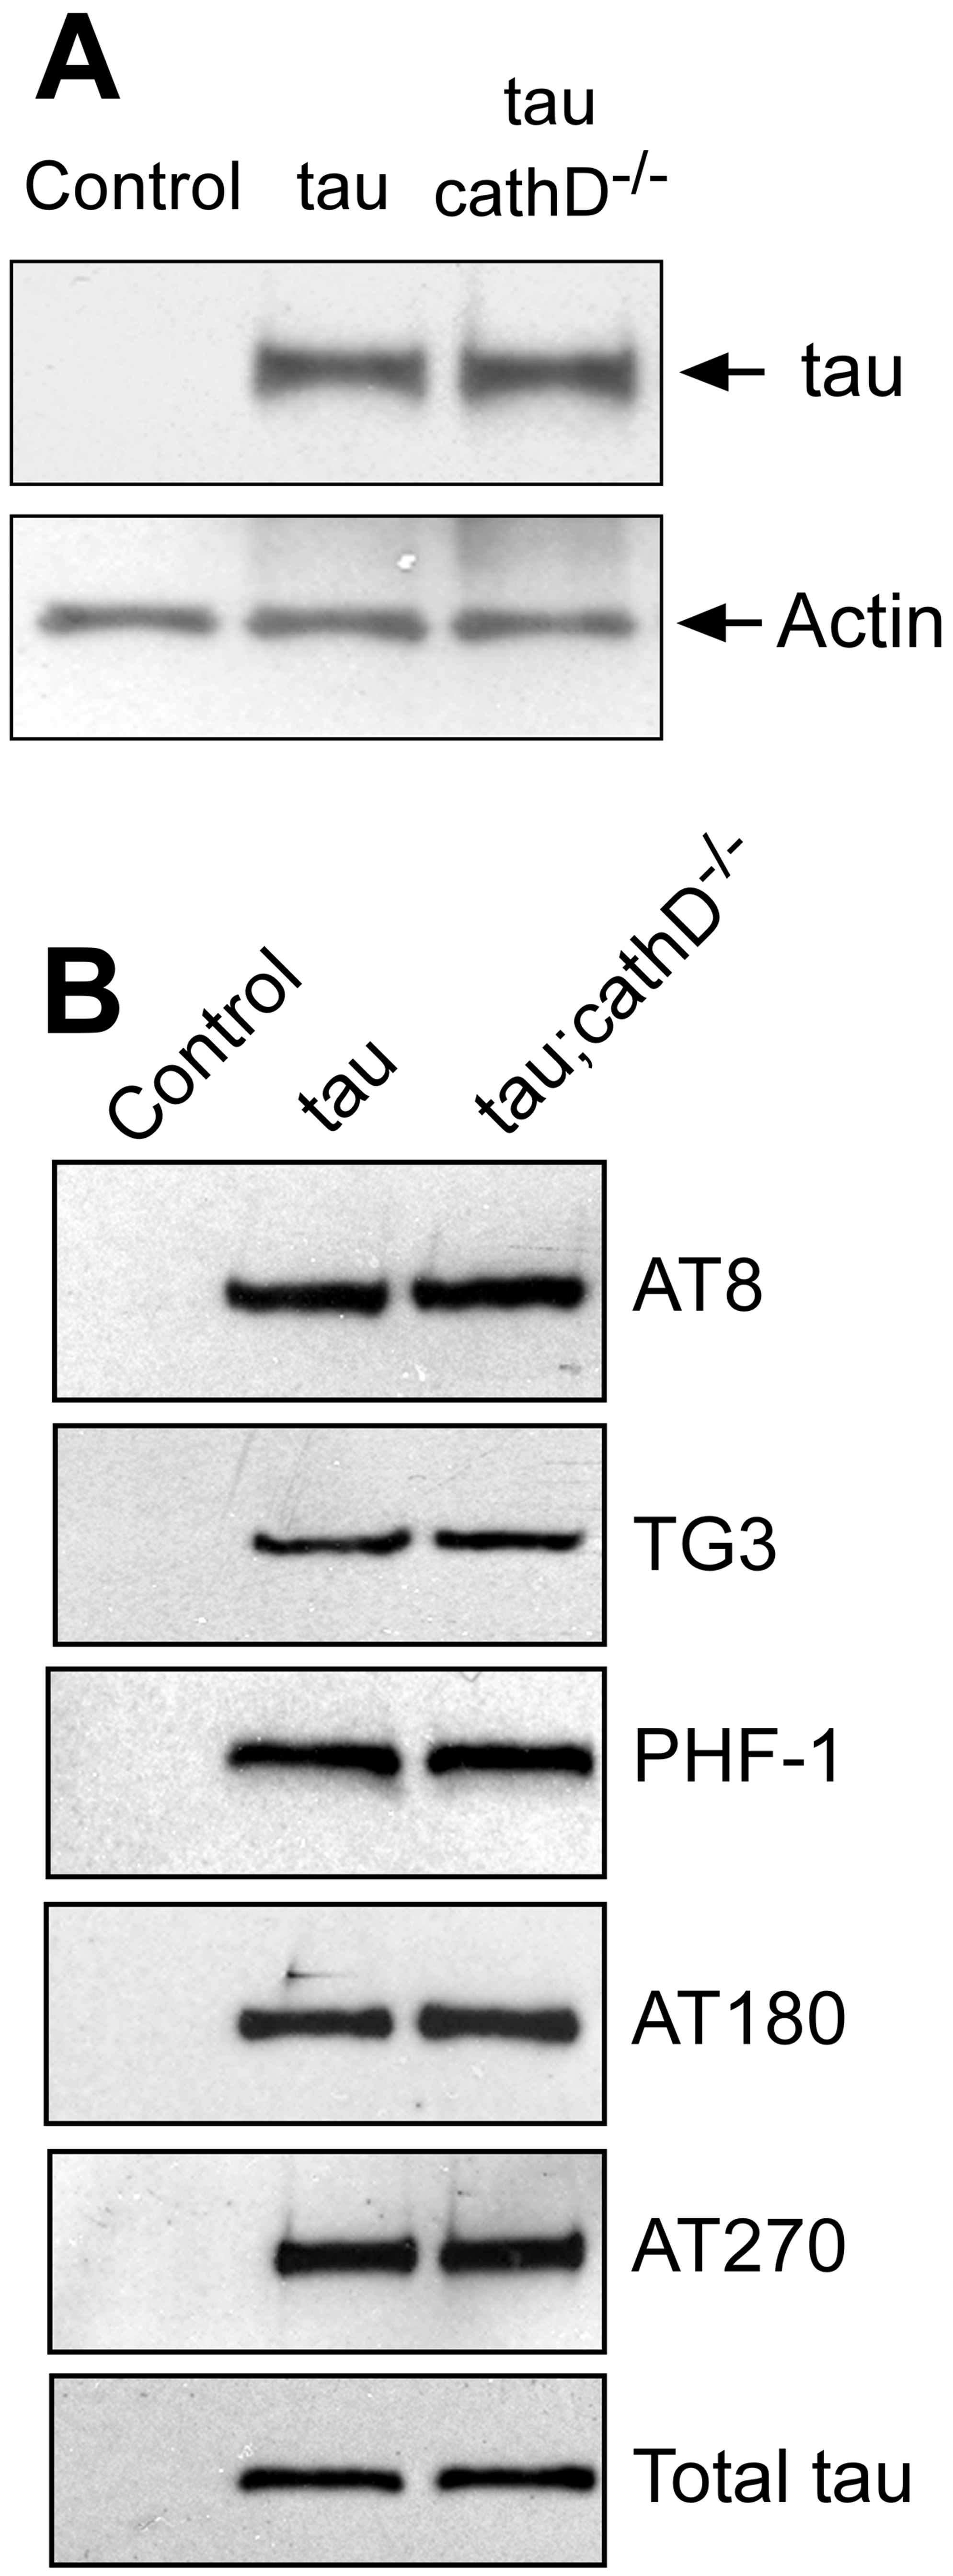 Removing cathepsin D does not substantially alter levels of tau.